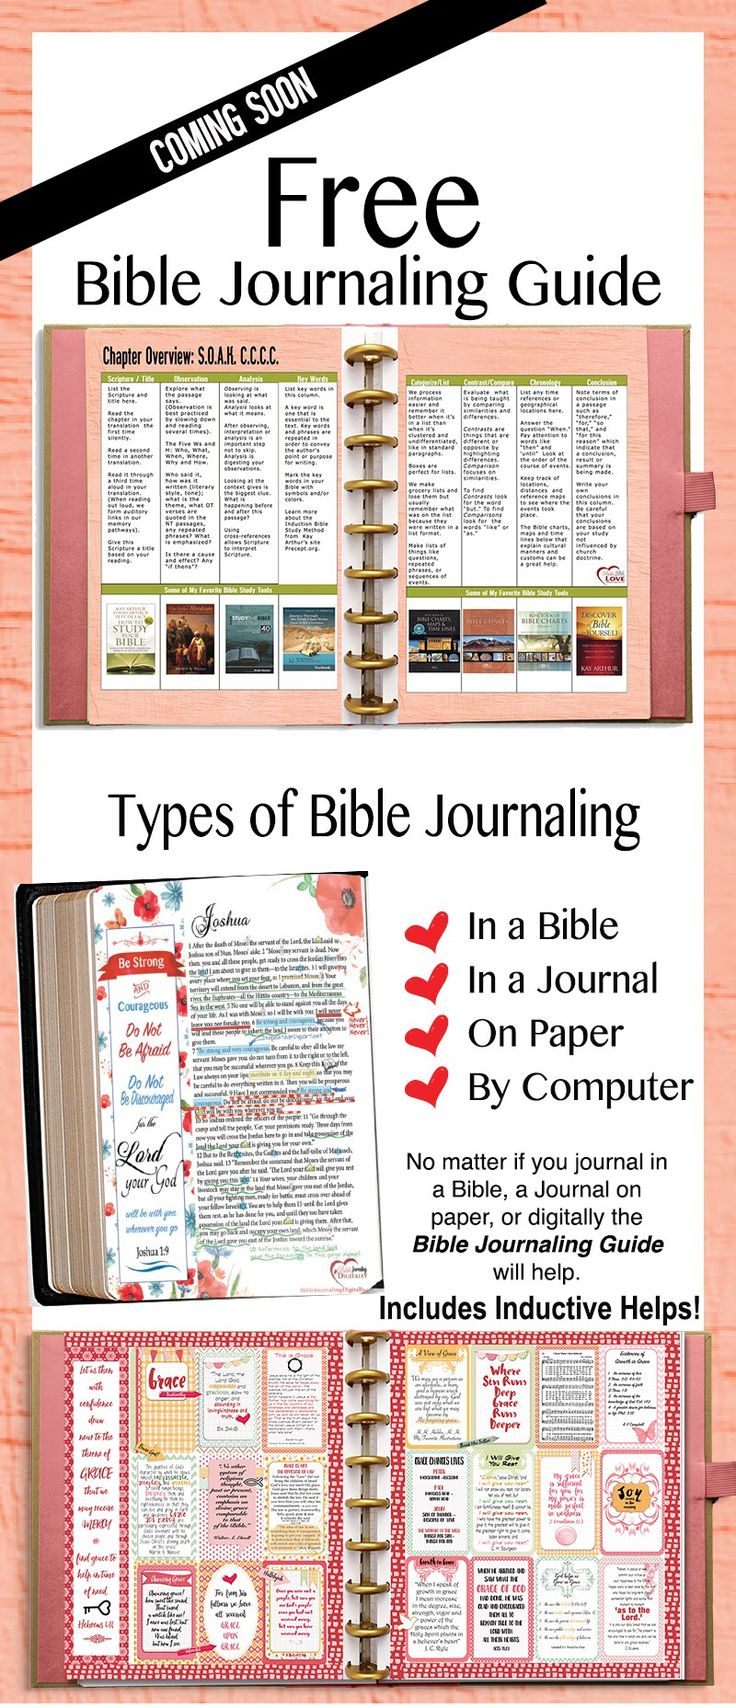 homosexuality in the bible research paper Articles on homosexuality and religion  homosexuality and the bible  hartford institute for religion research .